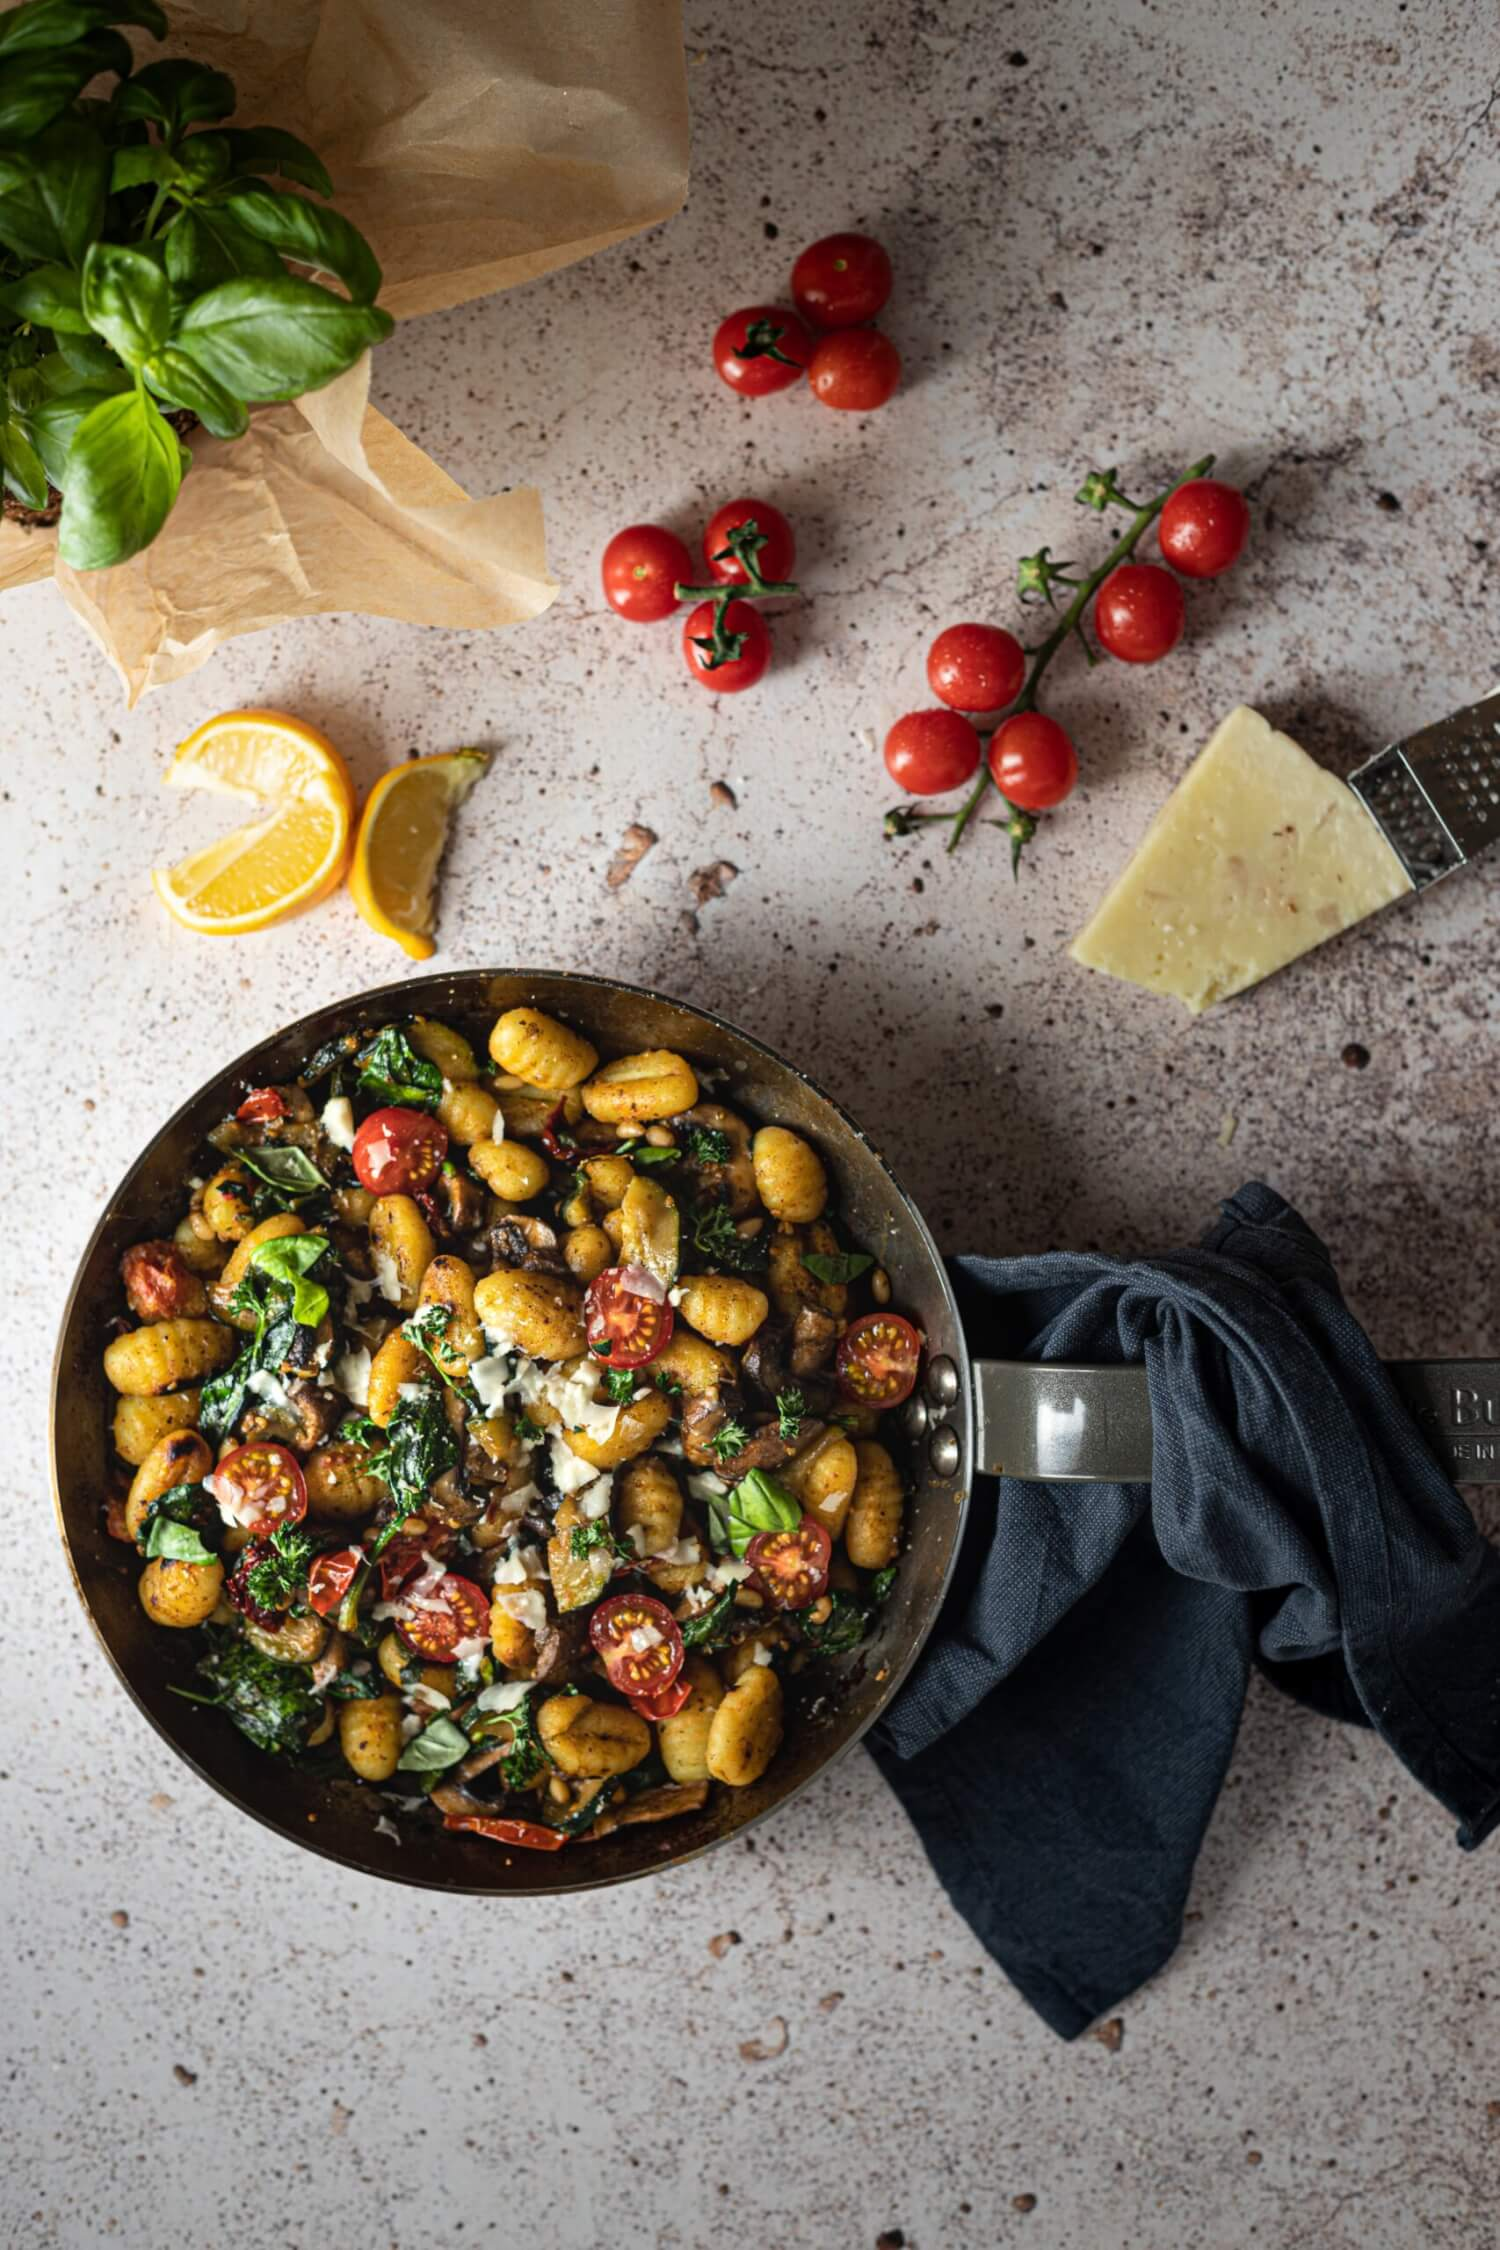 30 Delicious Homemade Recipes for Gnocchi You Must Try at Home!